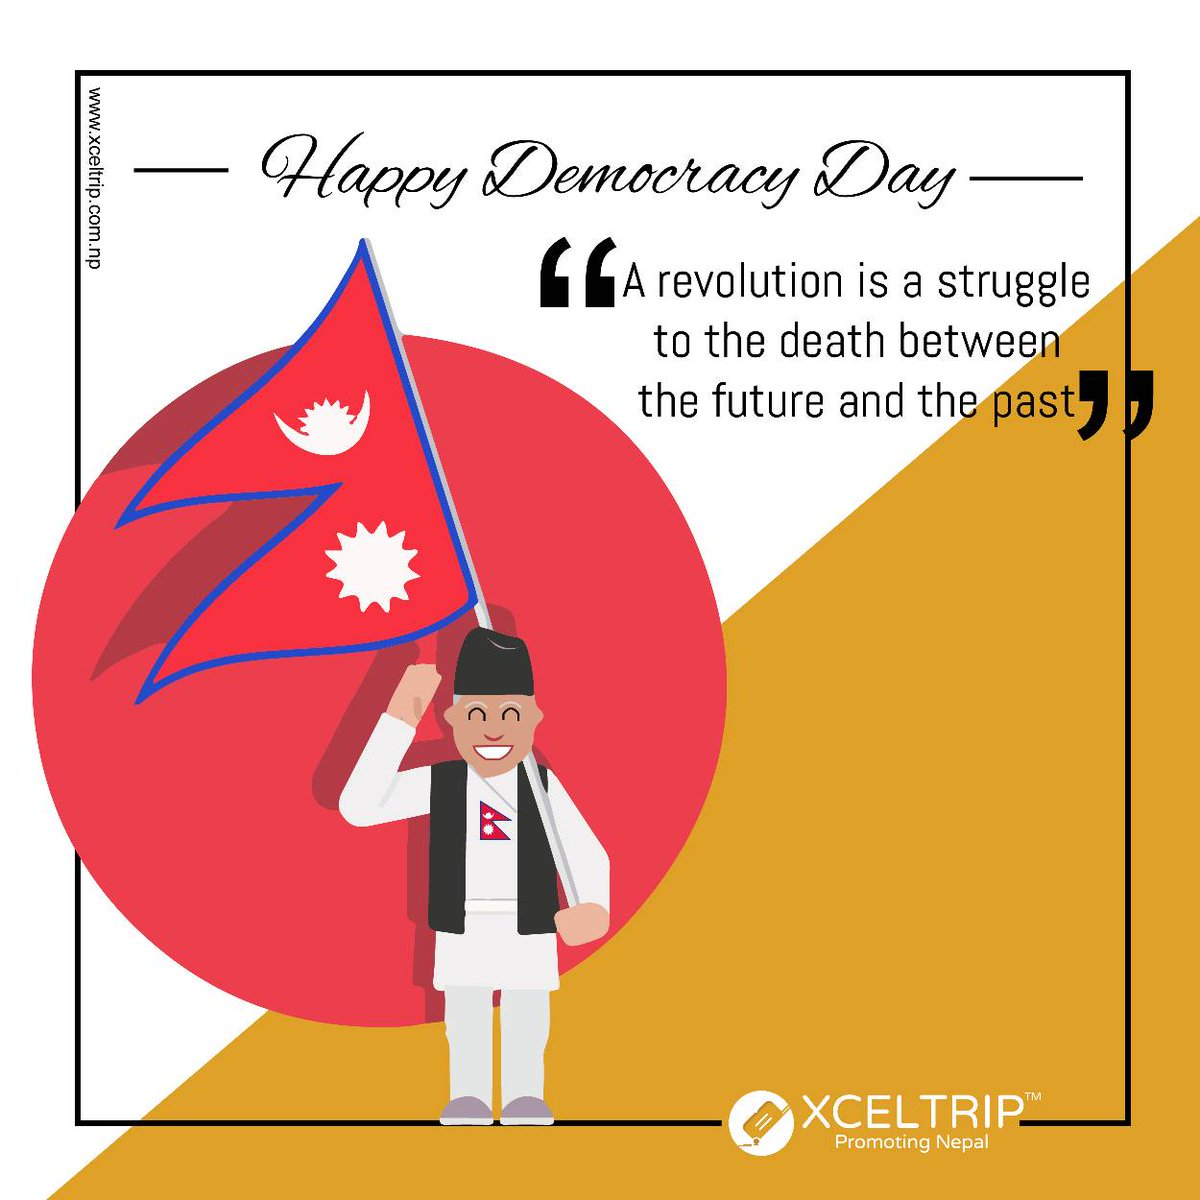 It is for the Change and Change is inevitable.  Happy Democracy Day!!!!  #democracyday #xceltrip #xceltripnepal<br>http://pic.twitter.com/xPD6OhEfJx